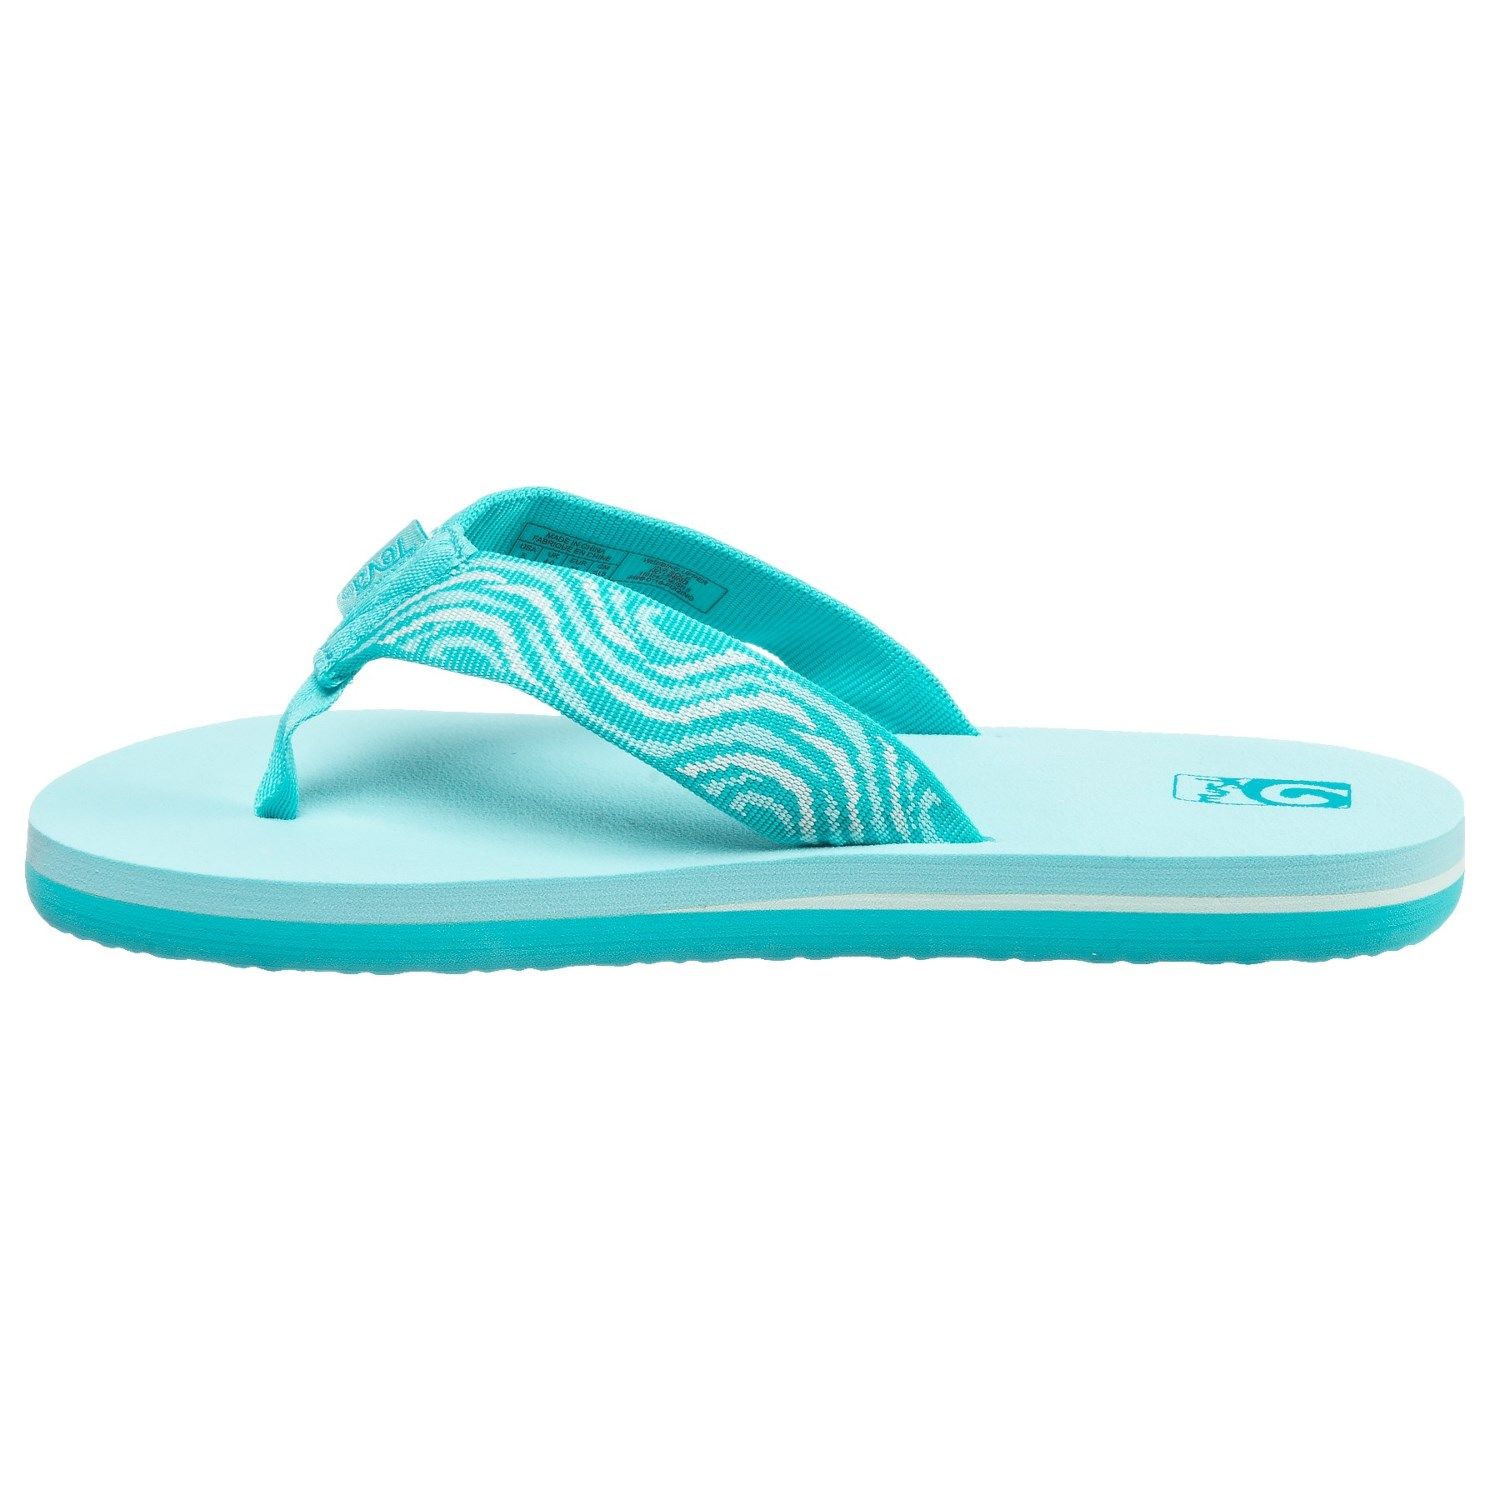 8716e67c6432 Teva Mush® II Flip-Flops (For Girls) - Save 50%